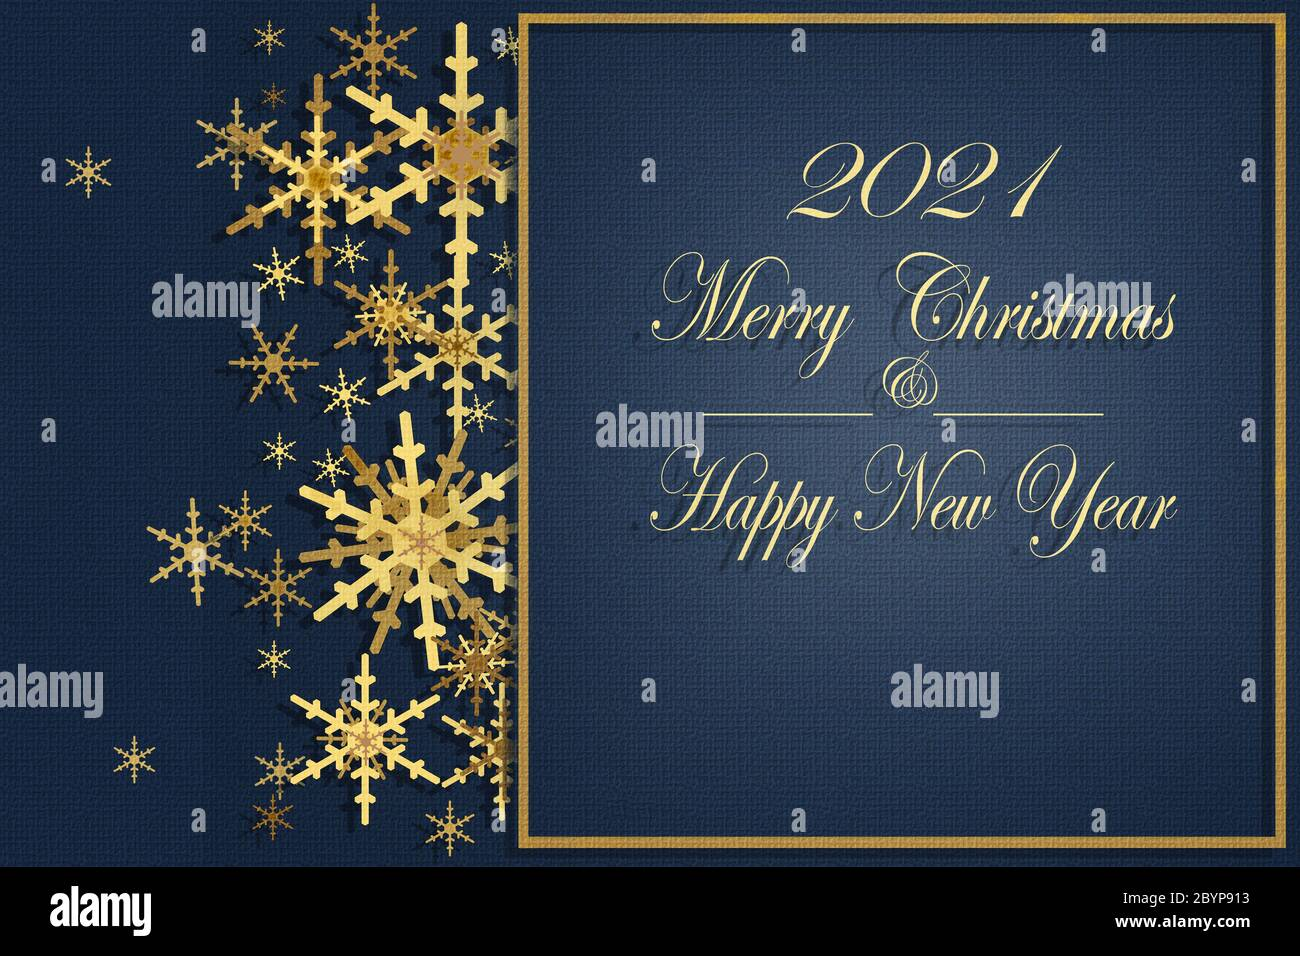 Hanging Banner Images Merry Christmas & Happy New Year 2021 Merry Christmas Happy New Year 2021 Banner Total Update